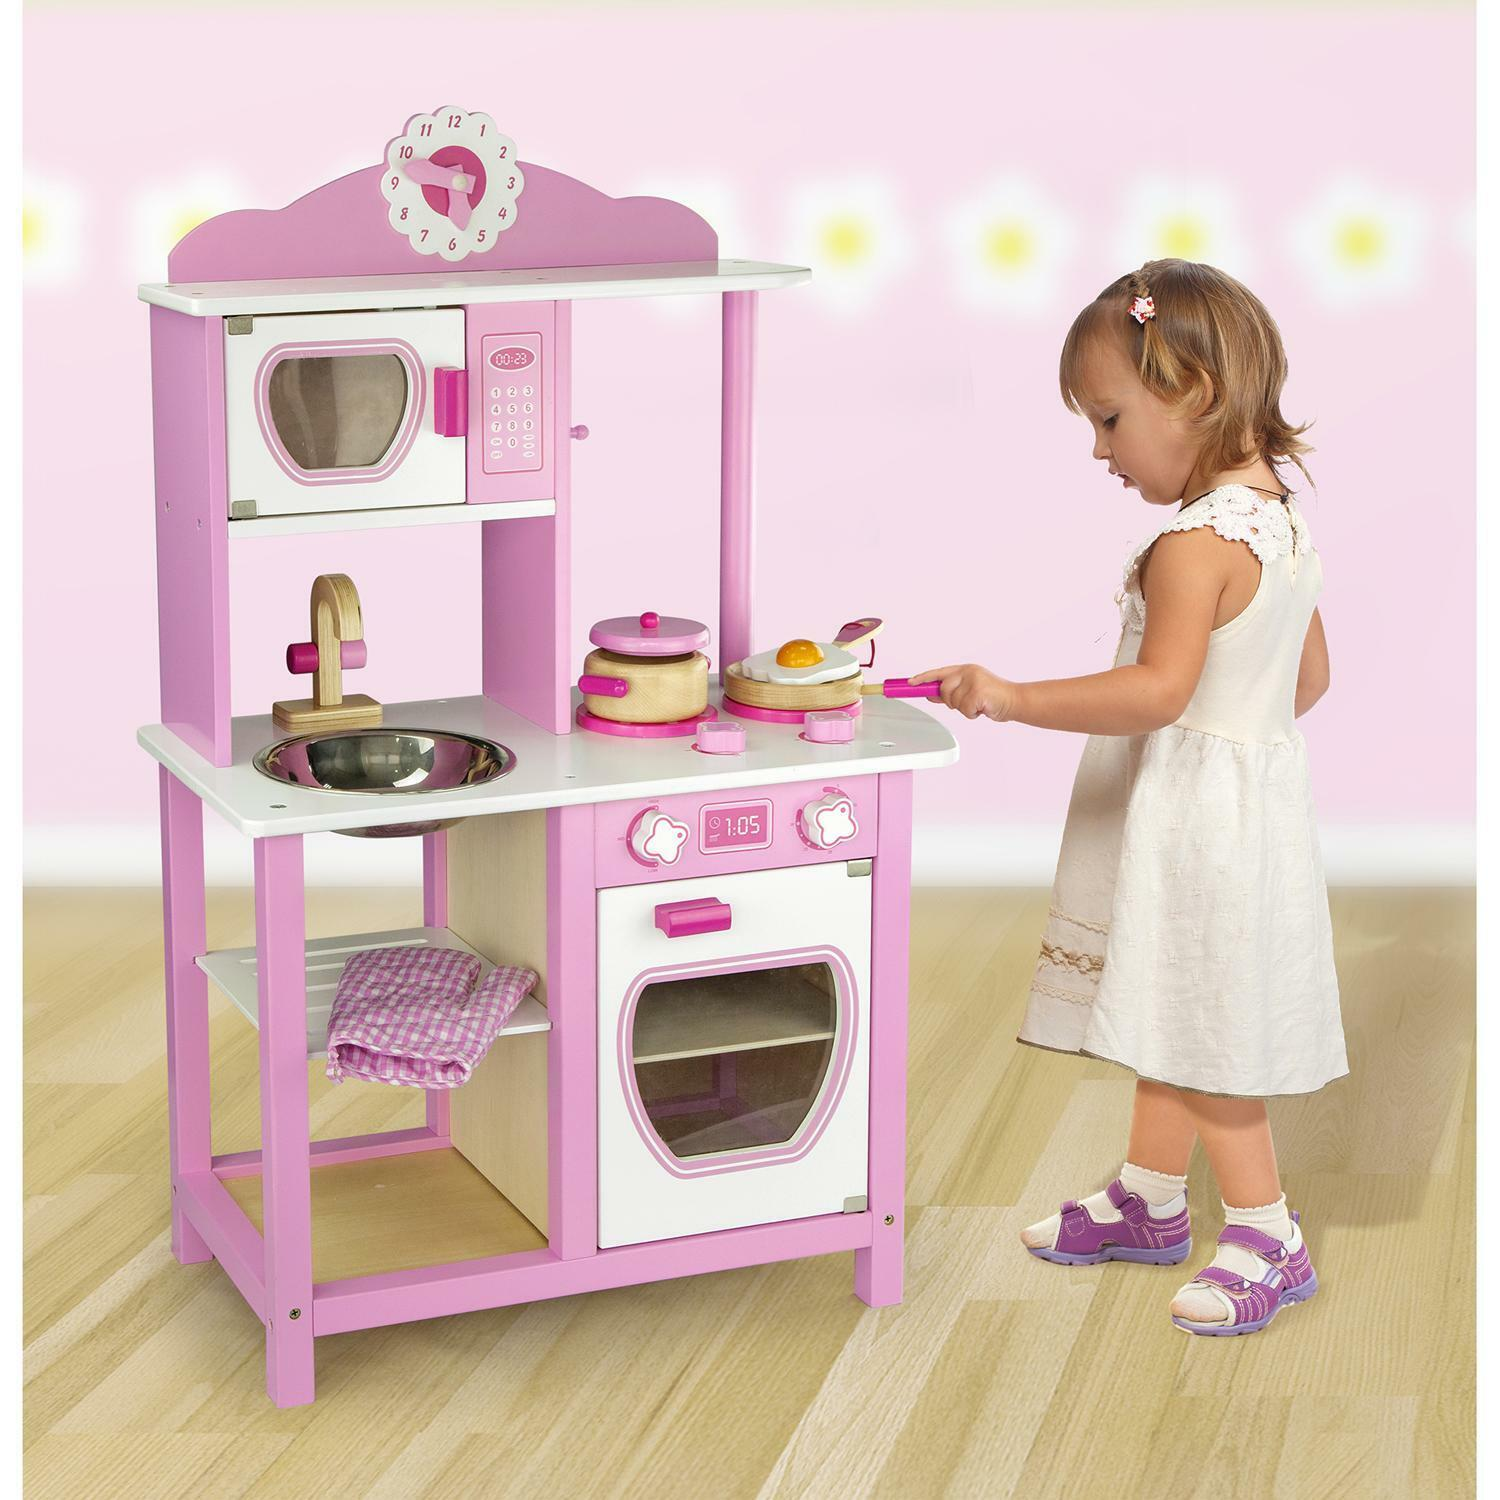 Pink Play Kitchen Set childrens kitchen play sets - home design ideas and pictures